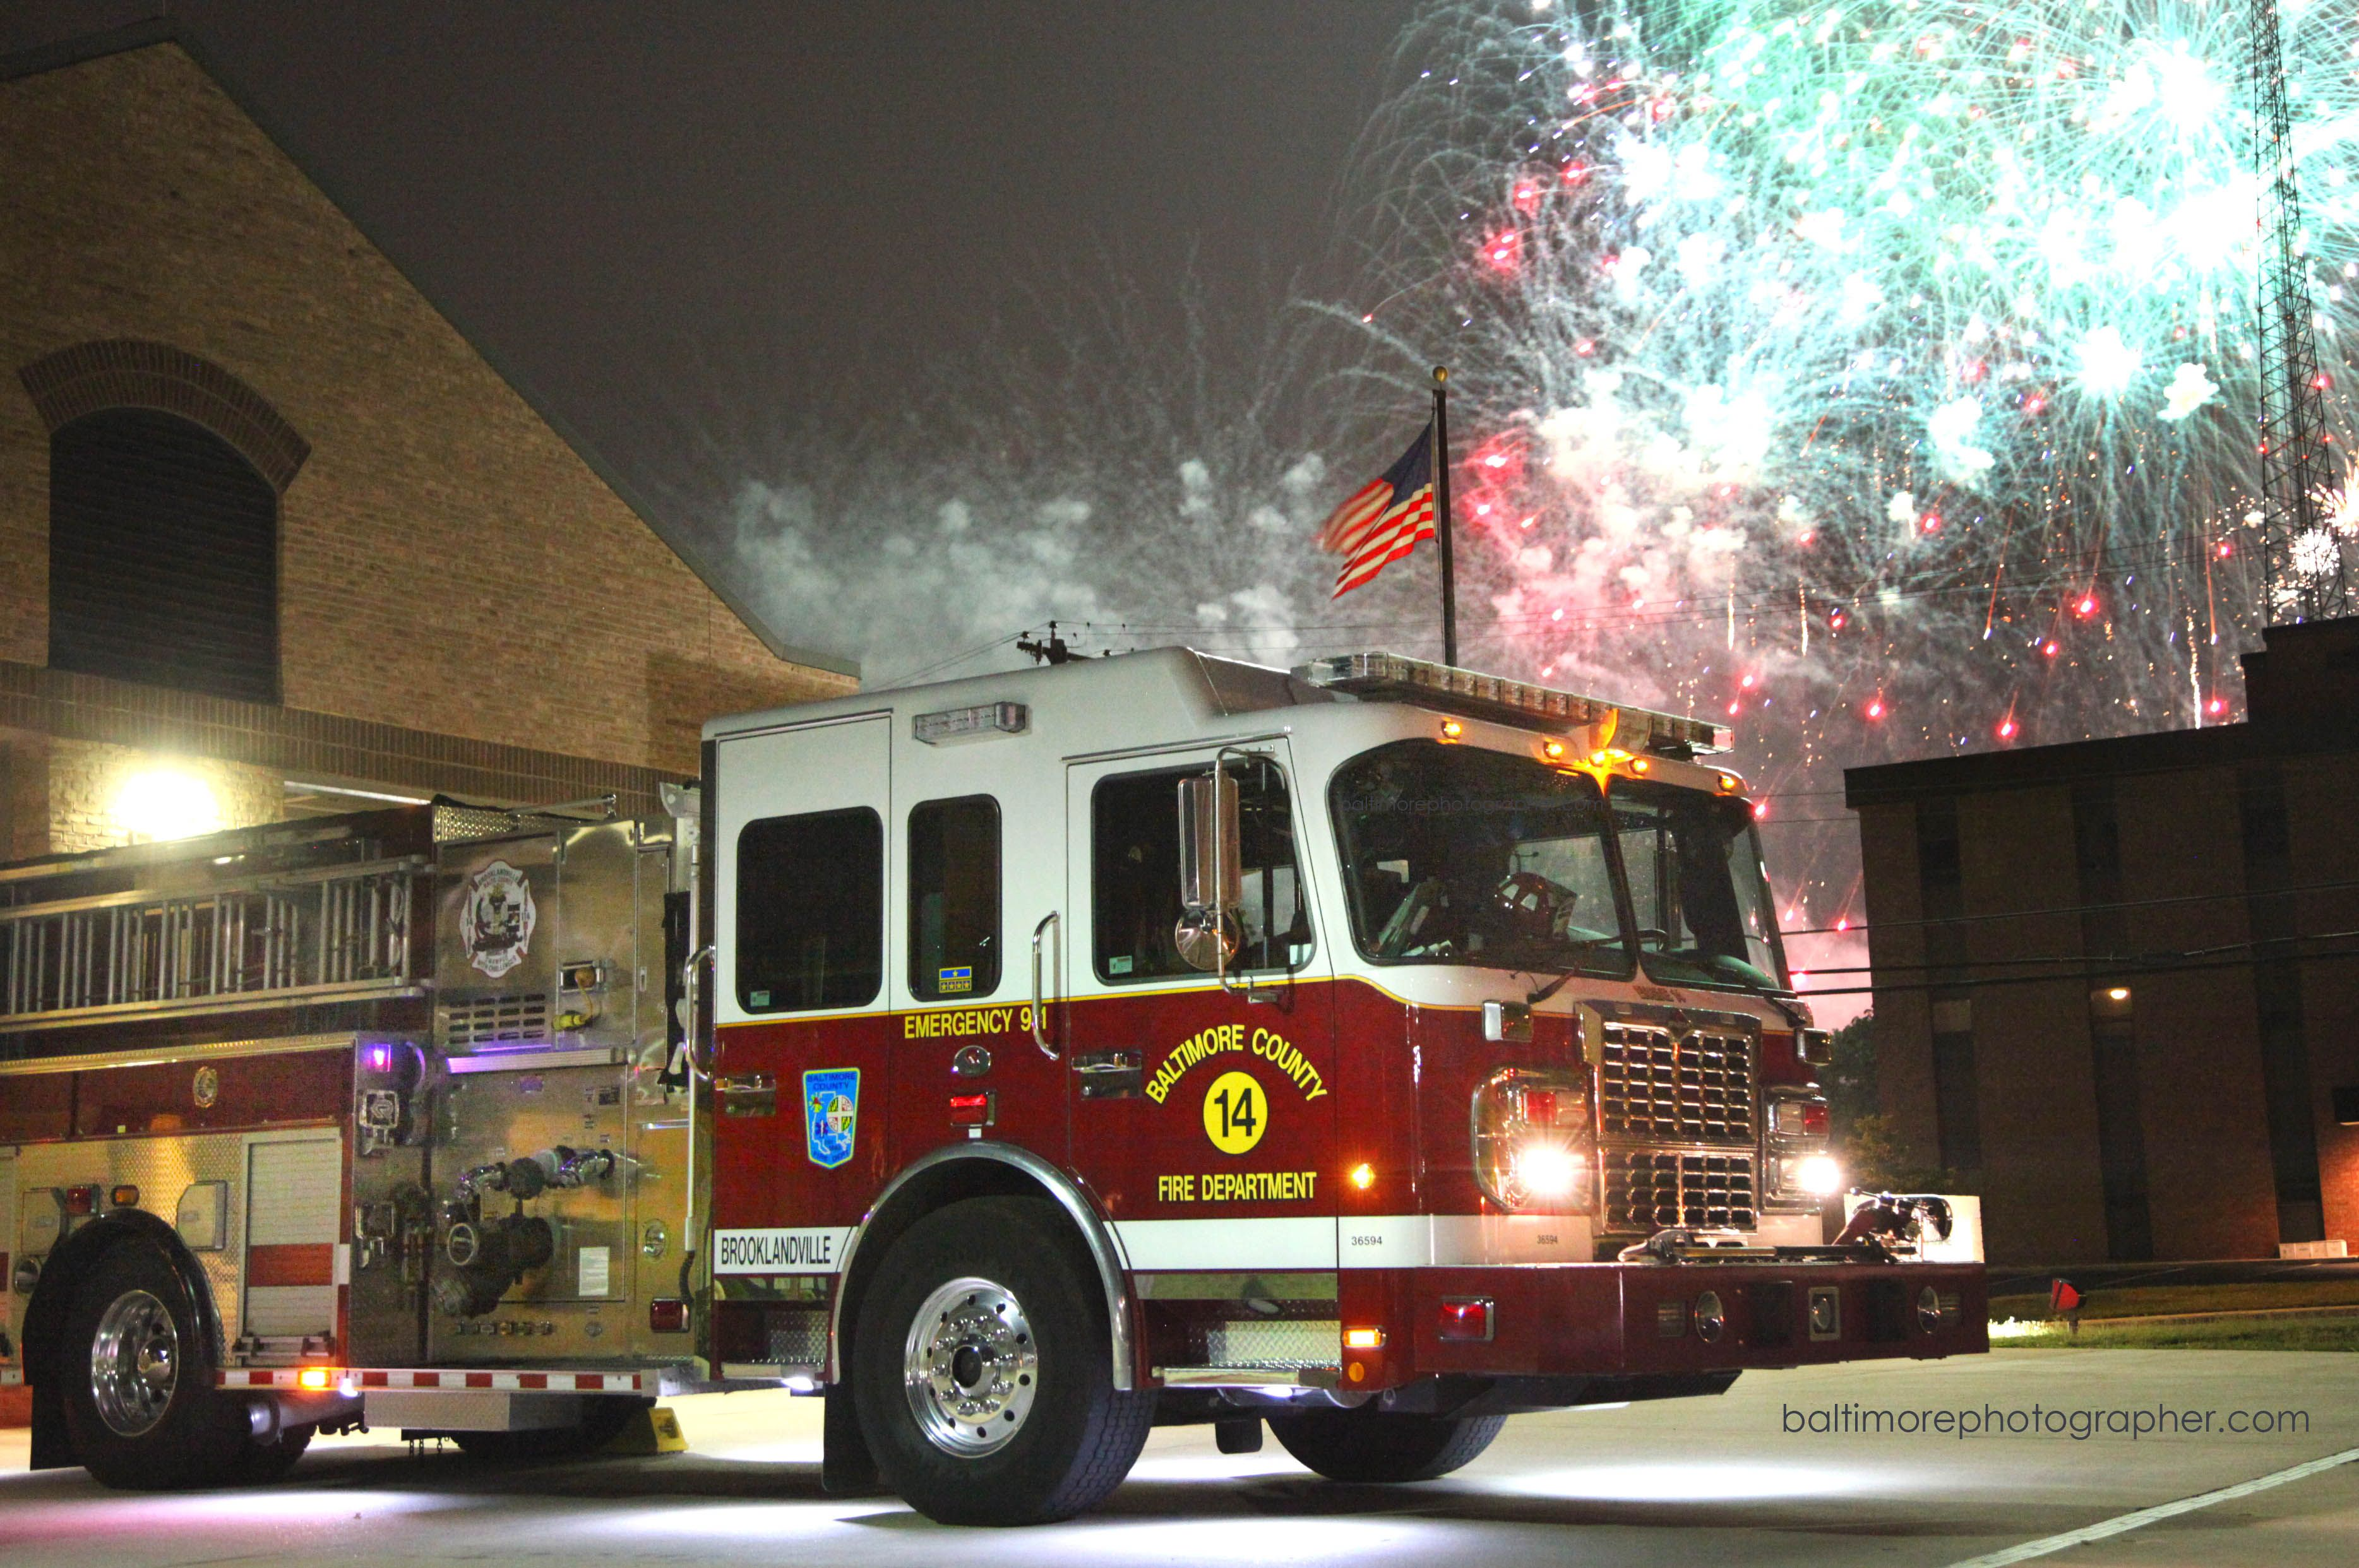 Fireworks Over Firehouse 4th Of July Surprise Image Appears After Long Day Of Hot Storm Repair Fire Trucks Fire Engine Fire Rescue